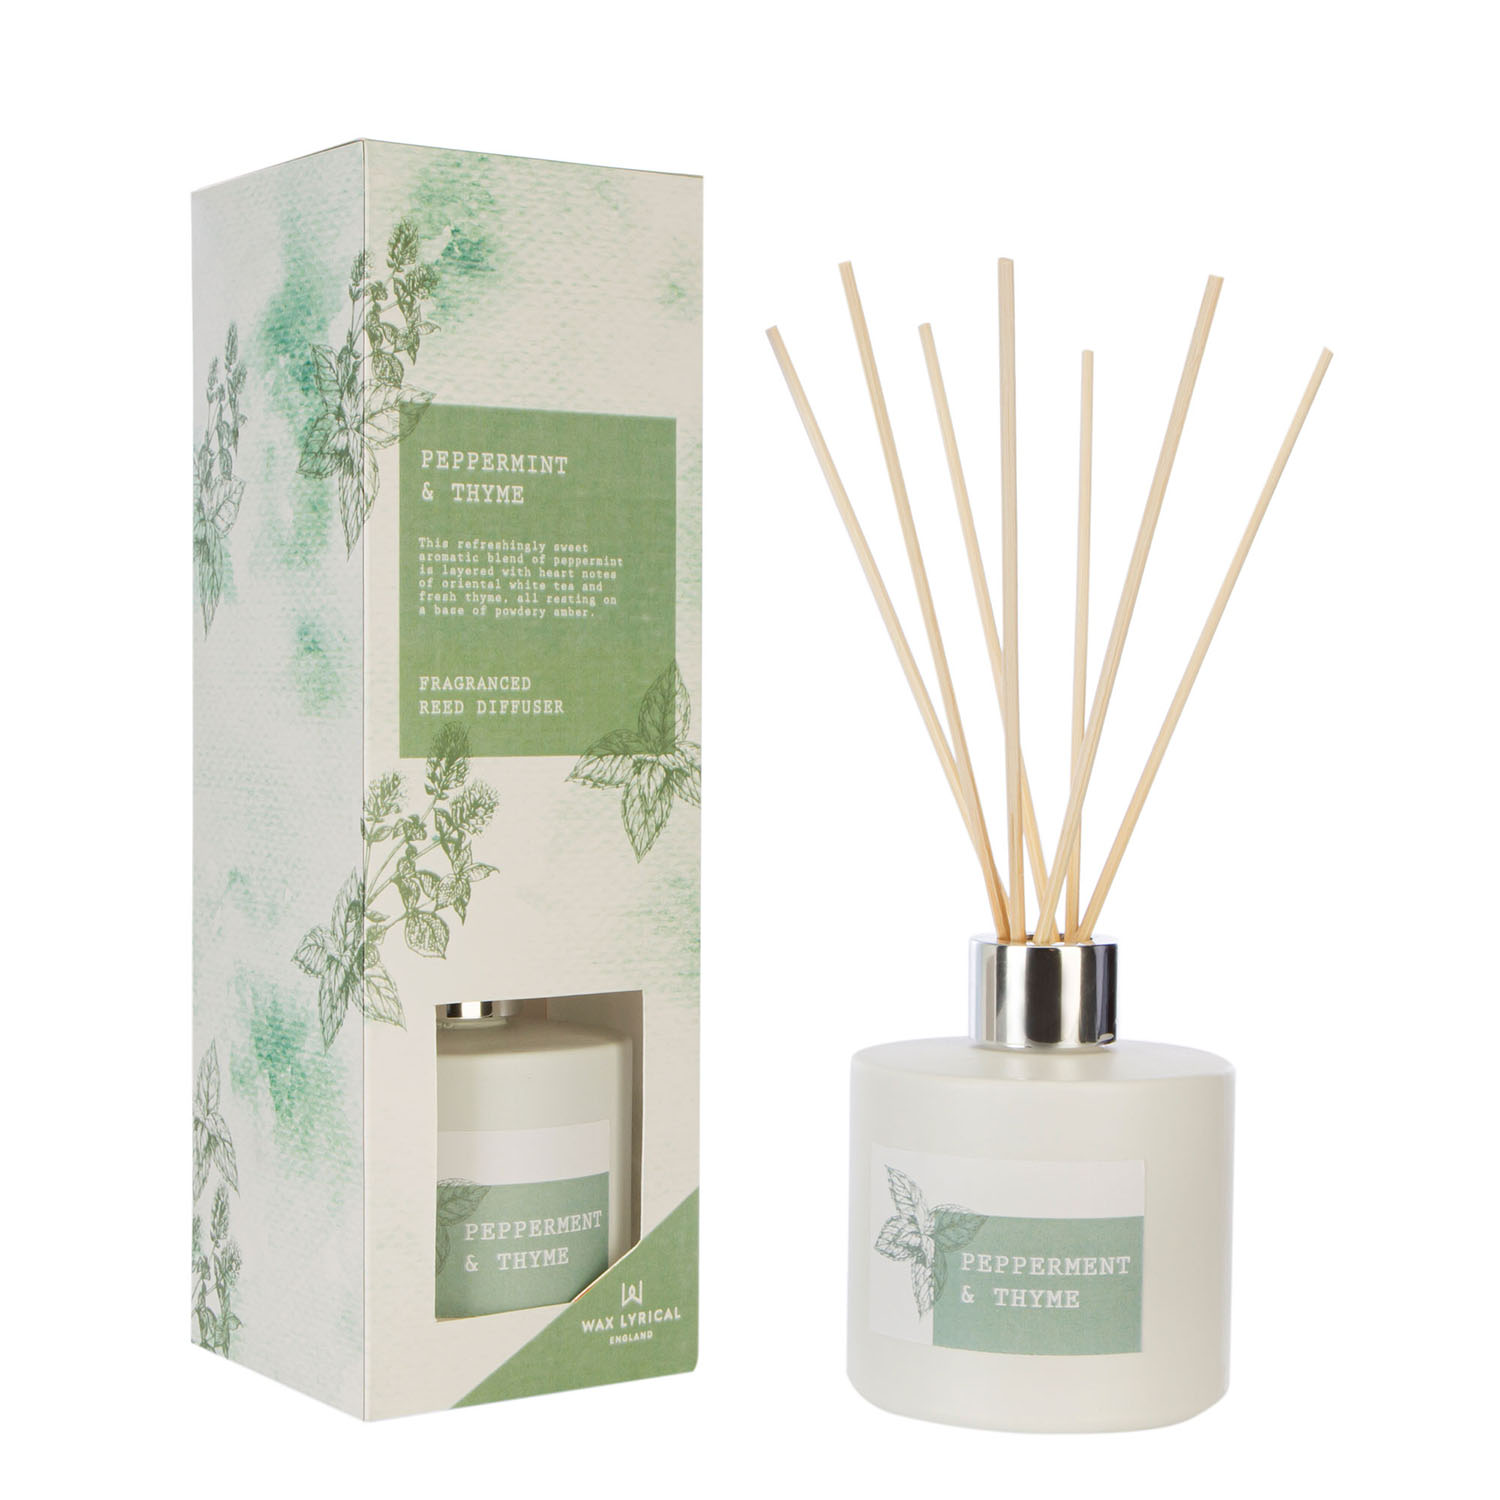 Wax Lyrical Reed Diffuser 100ML Peppermint and Thyme